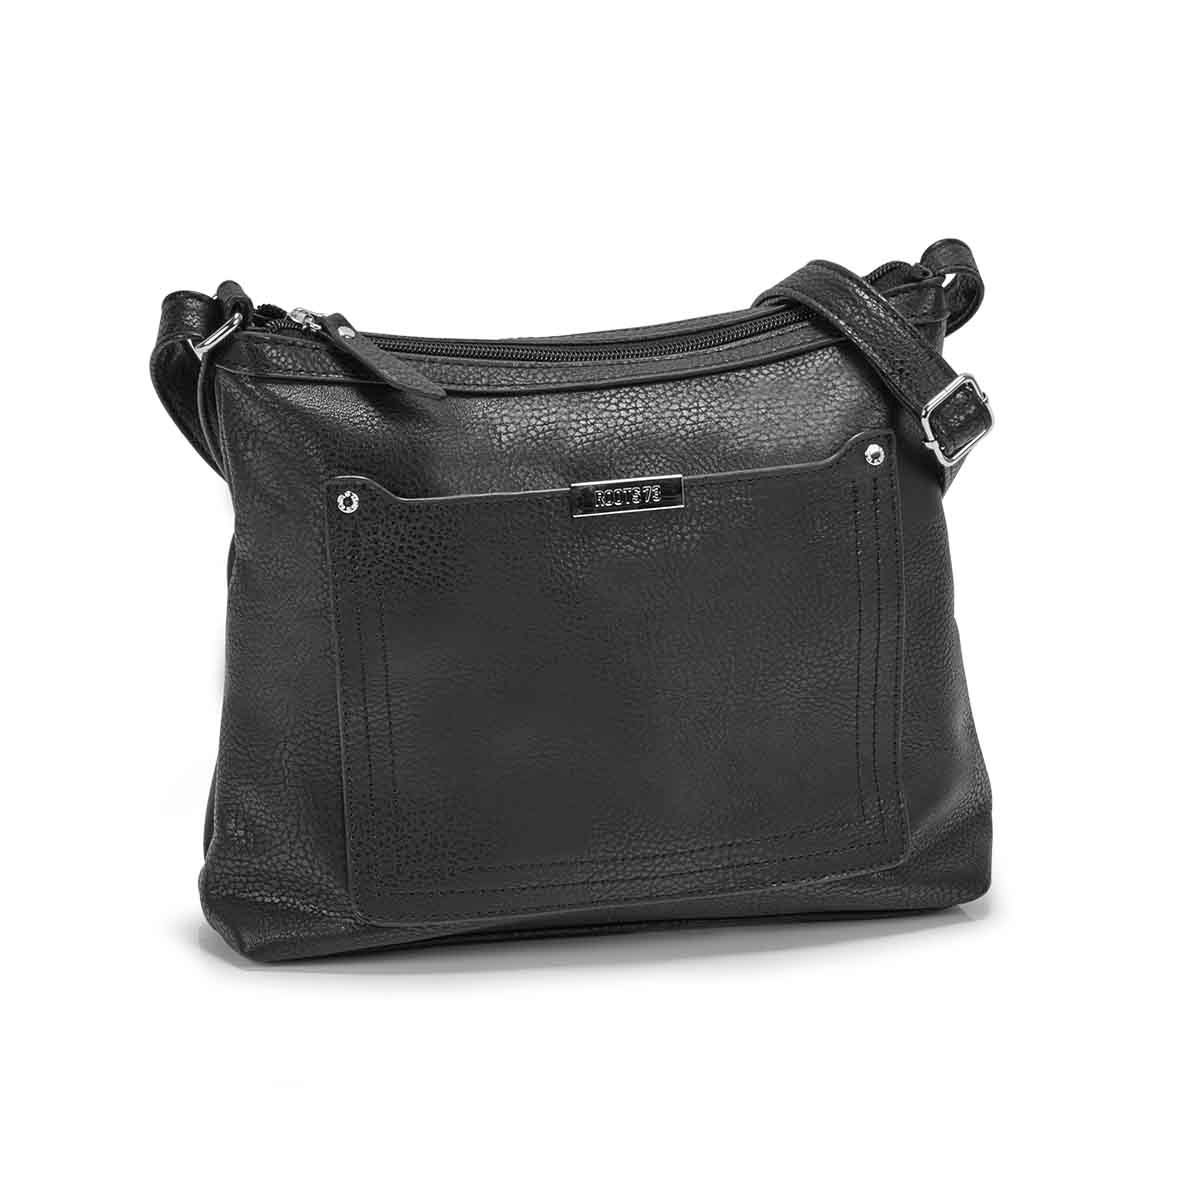 Lds Roots73 blk stiched pocket crossbody